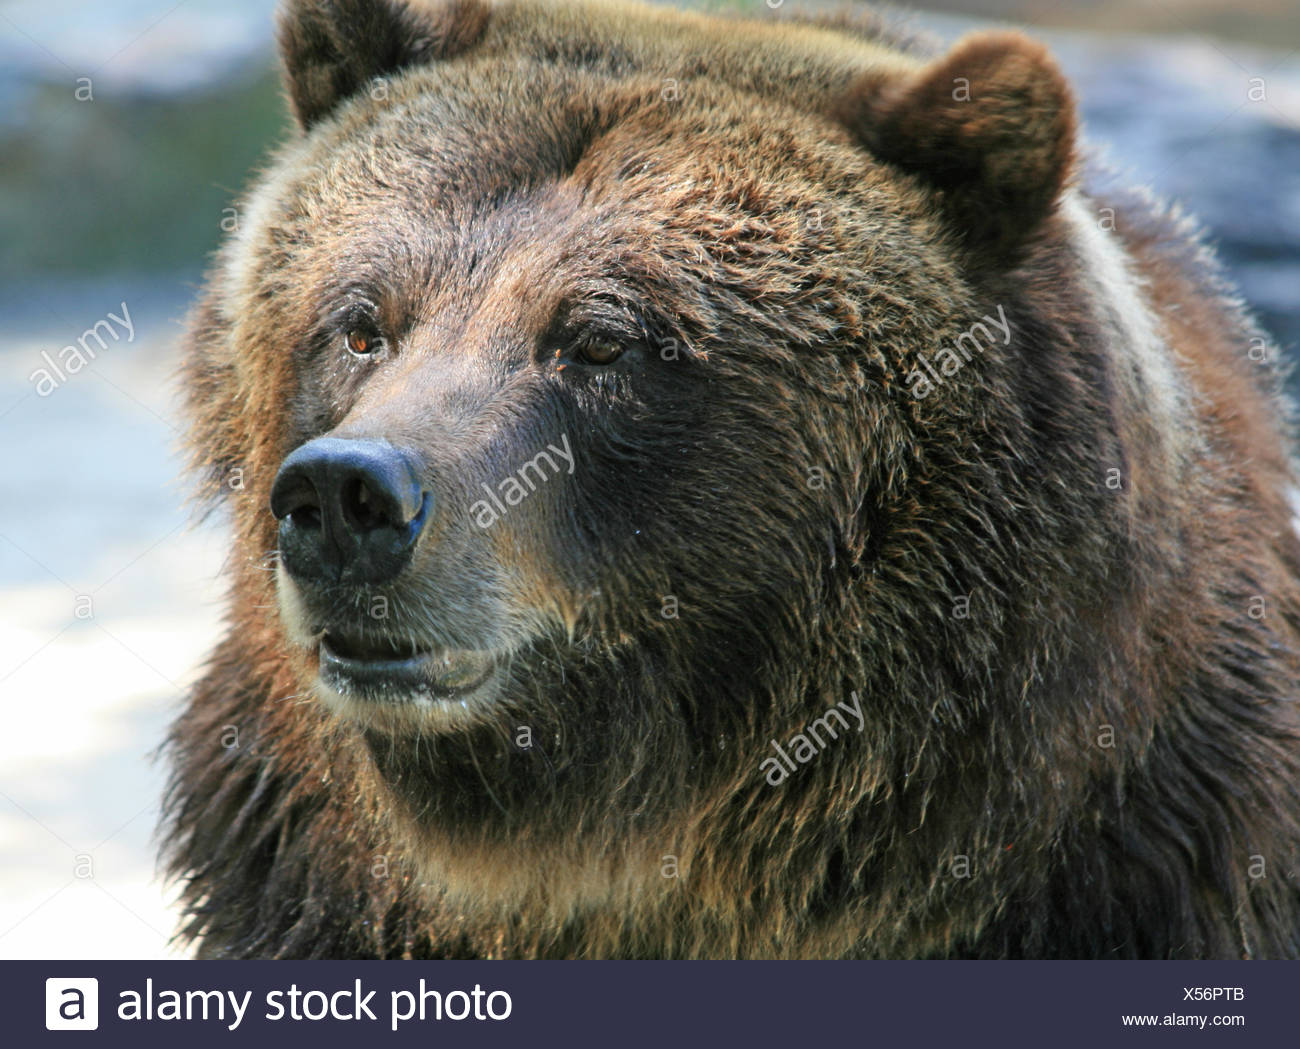 Bear - Stock Image